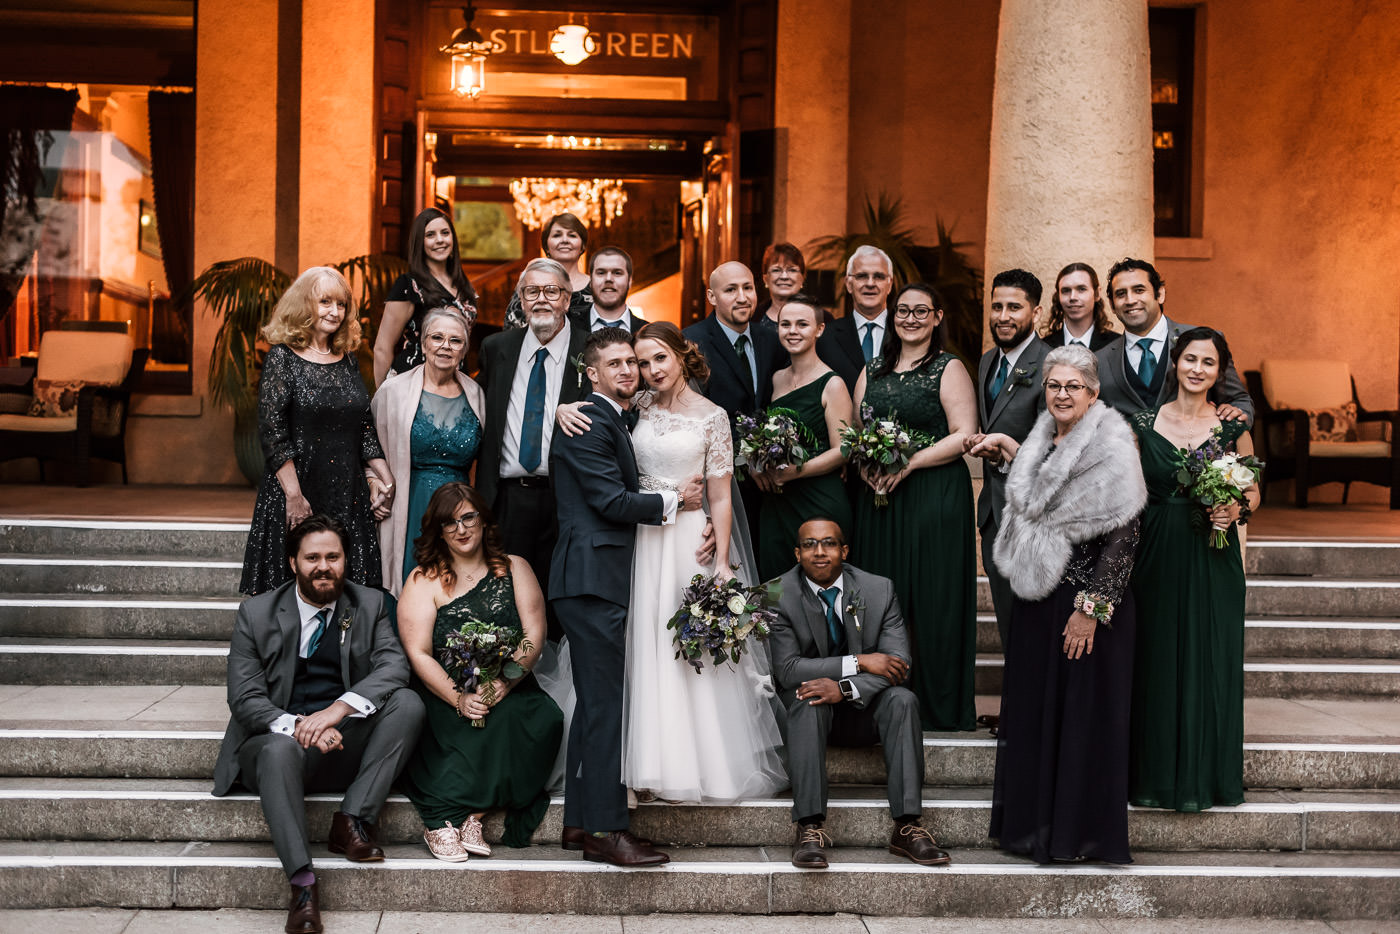 Group photo of all the bride and grooms closest friends and family.